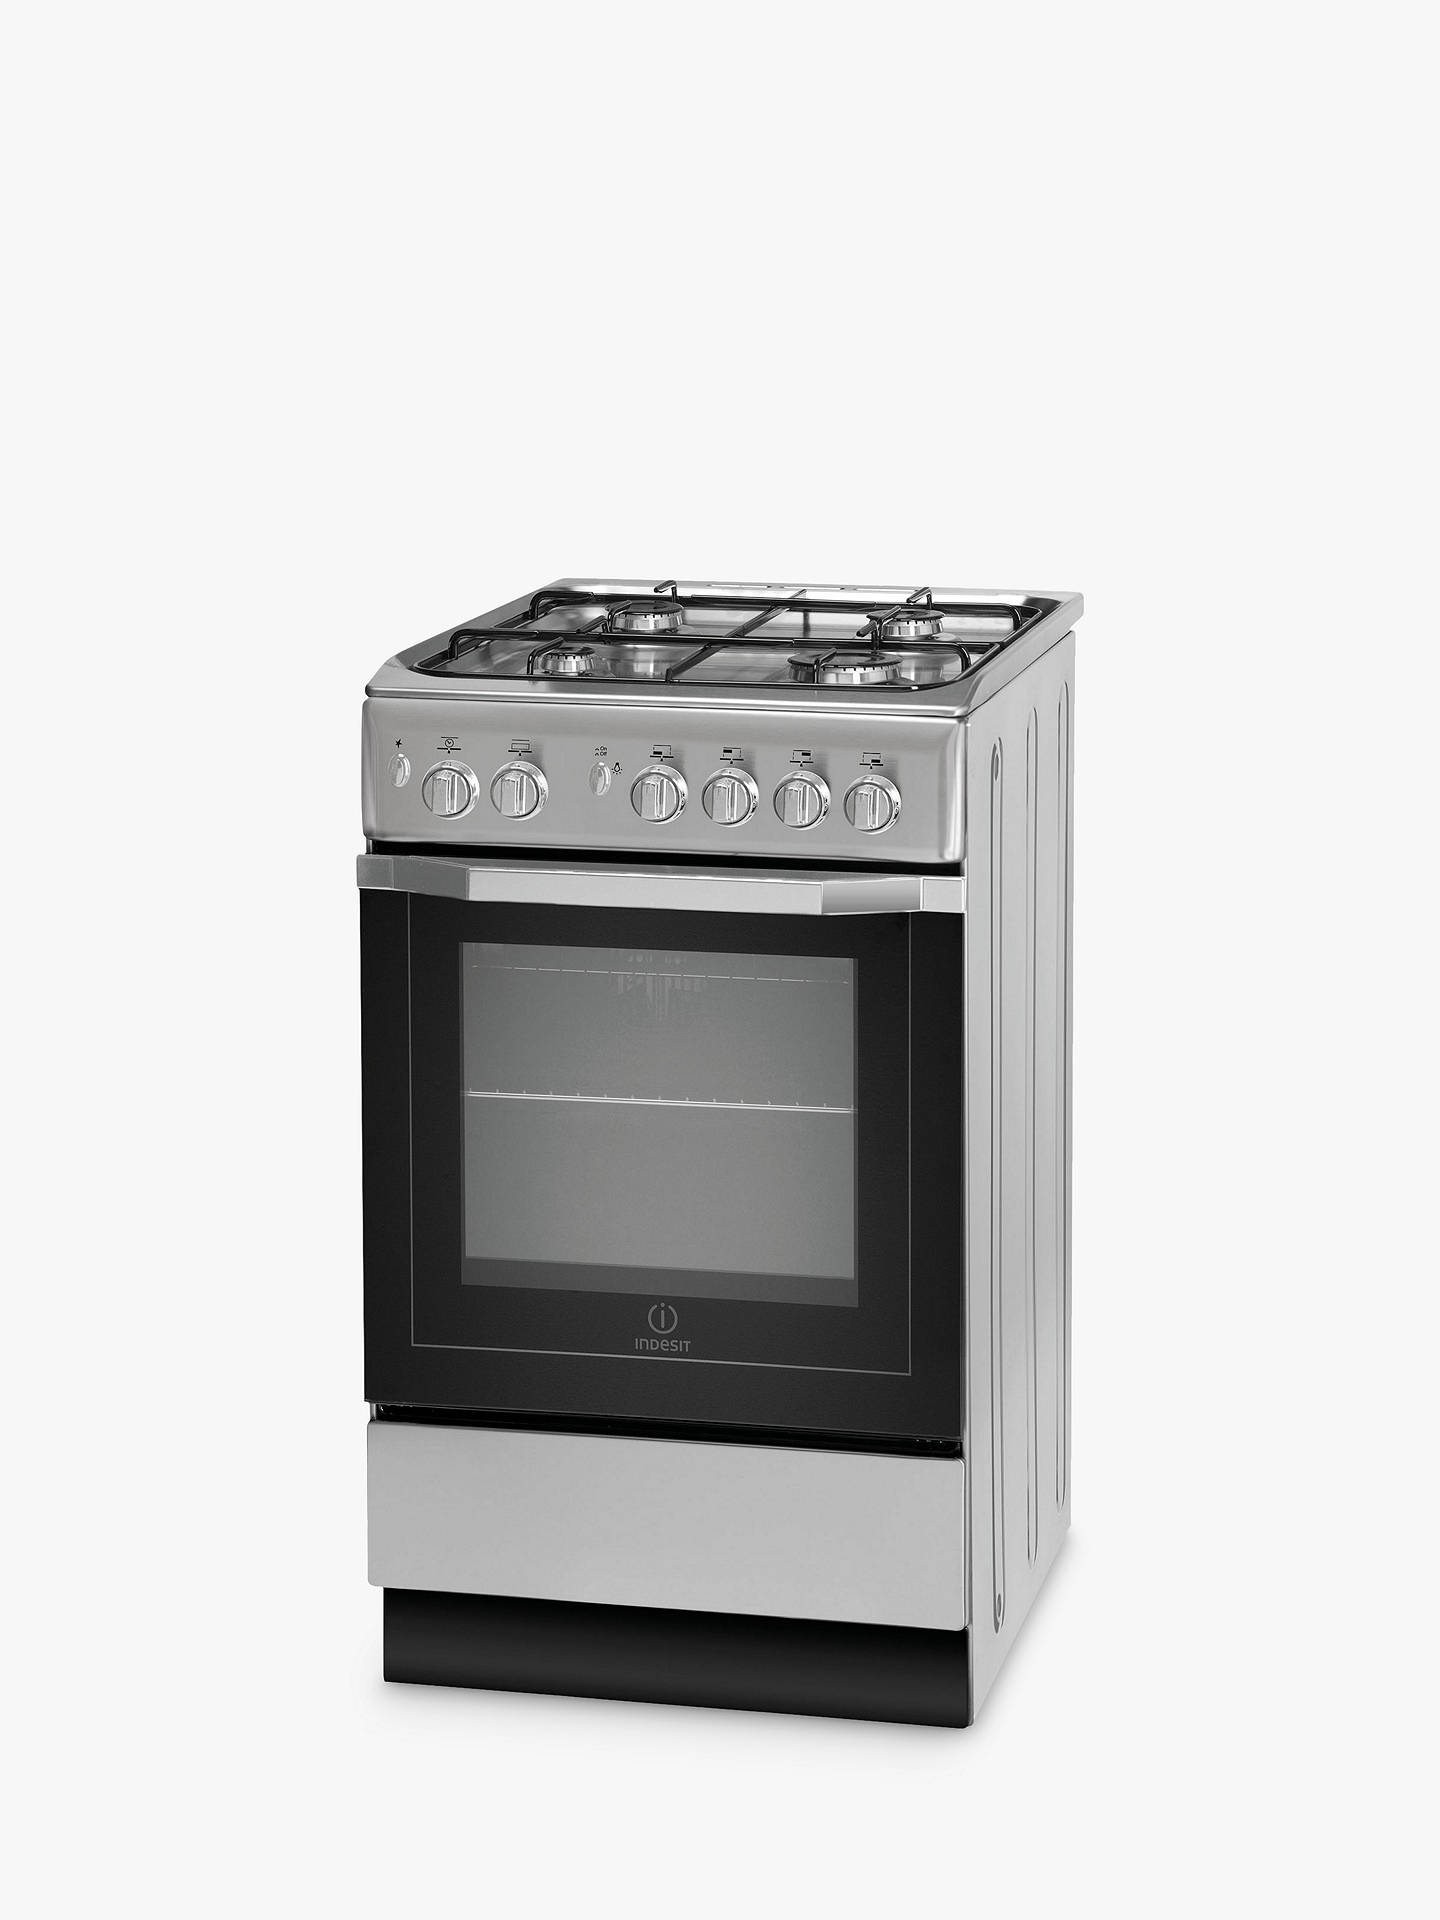 indesit i5gg1s freestanding gas cooker silver at john. Black Bedroom Furniture Sets. Home Design Ideas